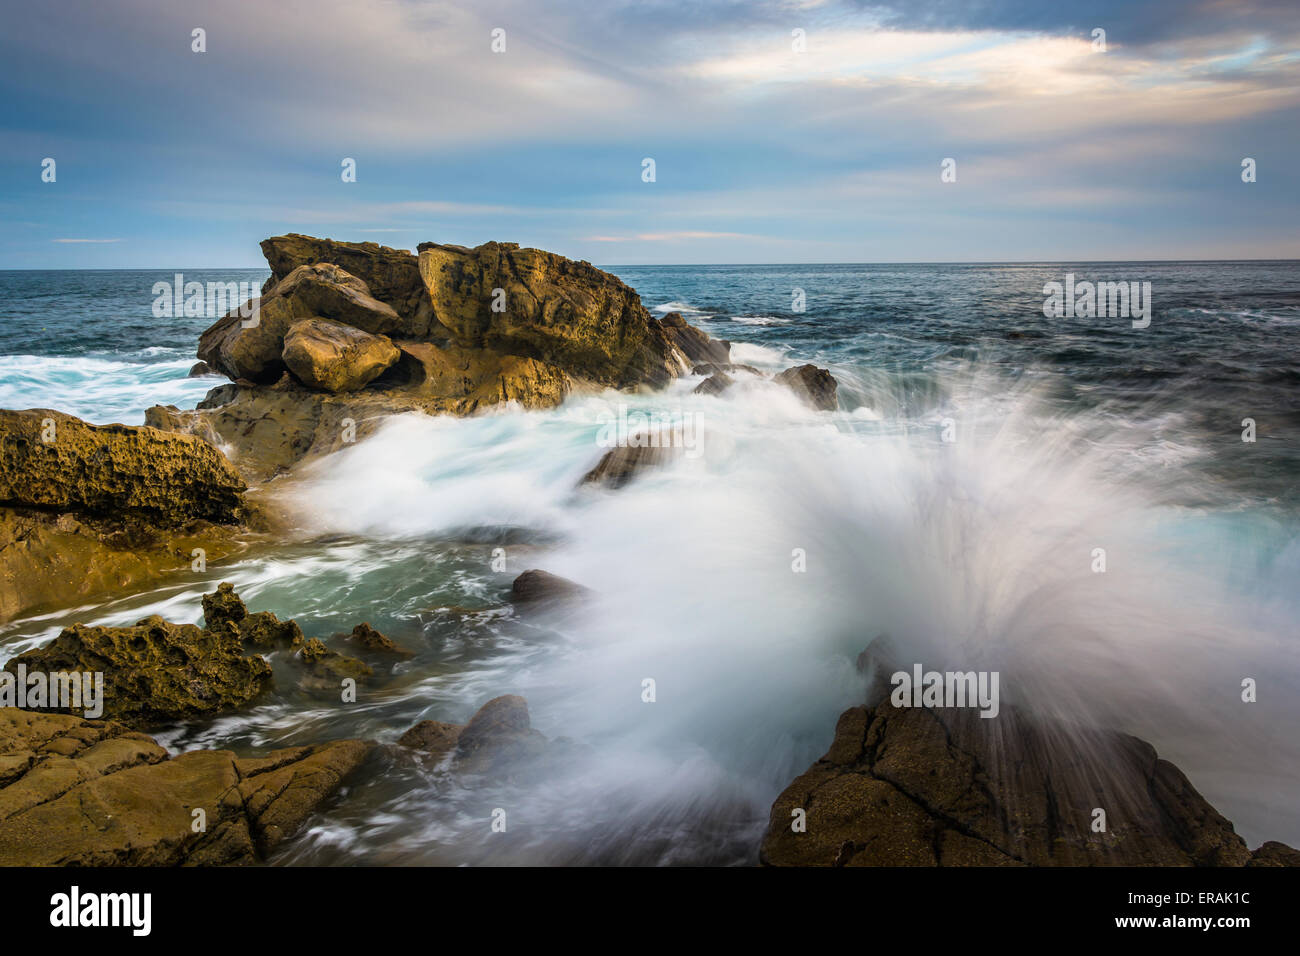 Rocks and waves in the Pacific Ocean at Monument Point, Heisler Park, Laguna Beach, California. Stock Photo